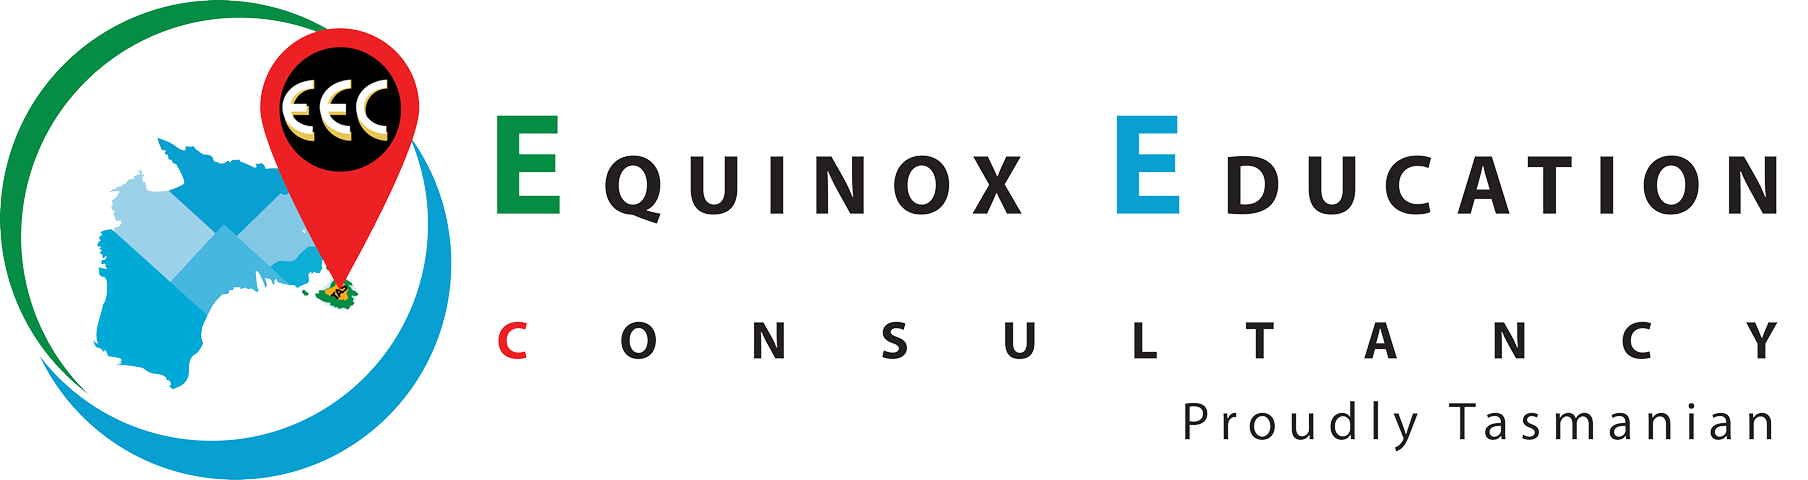 Equinox Education Consultancy